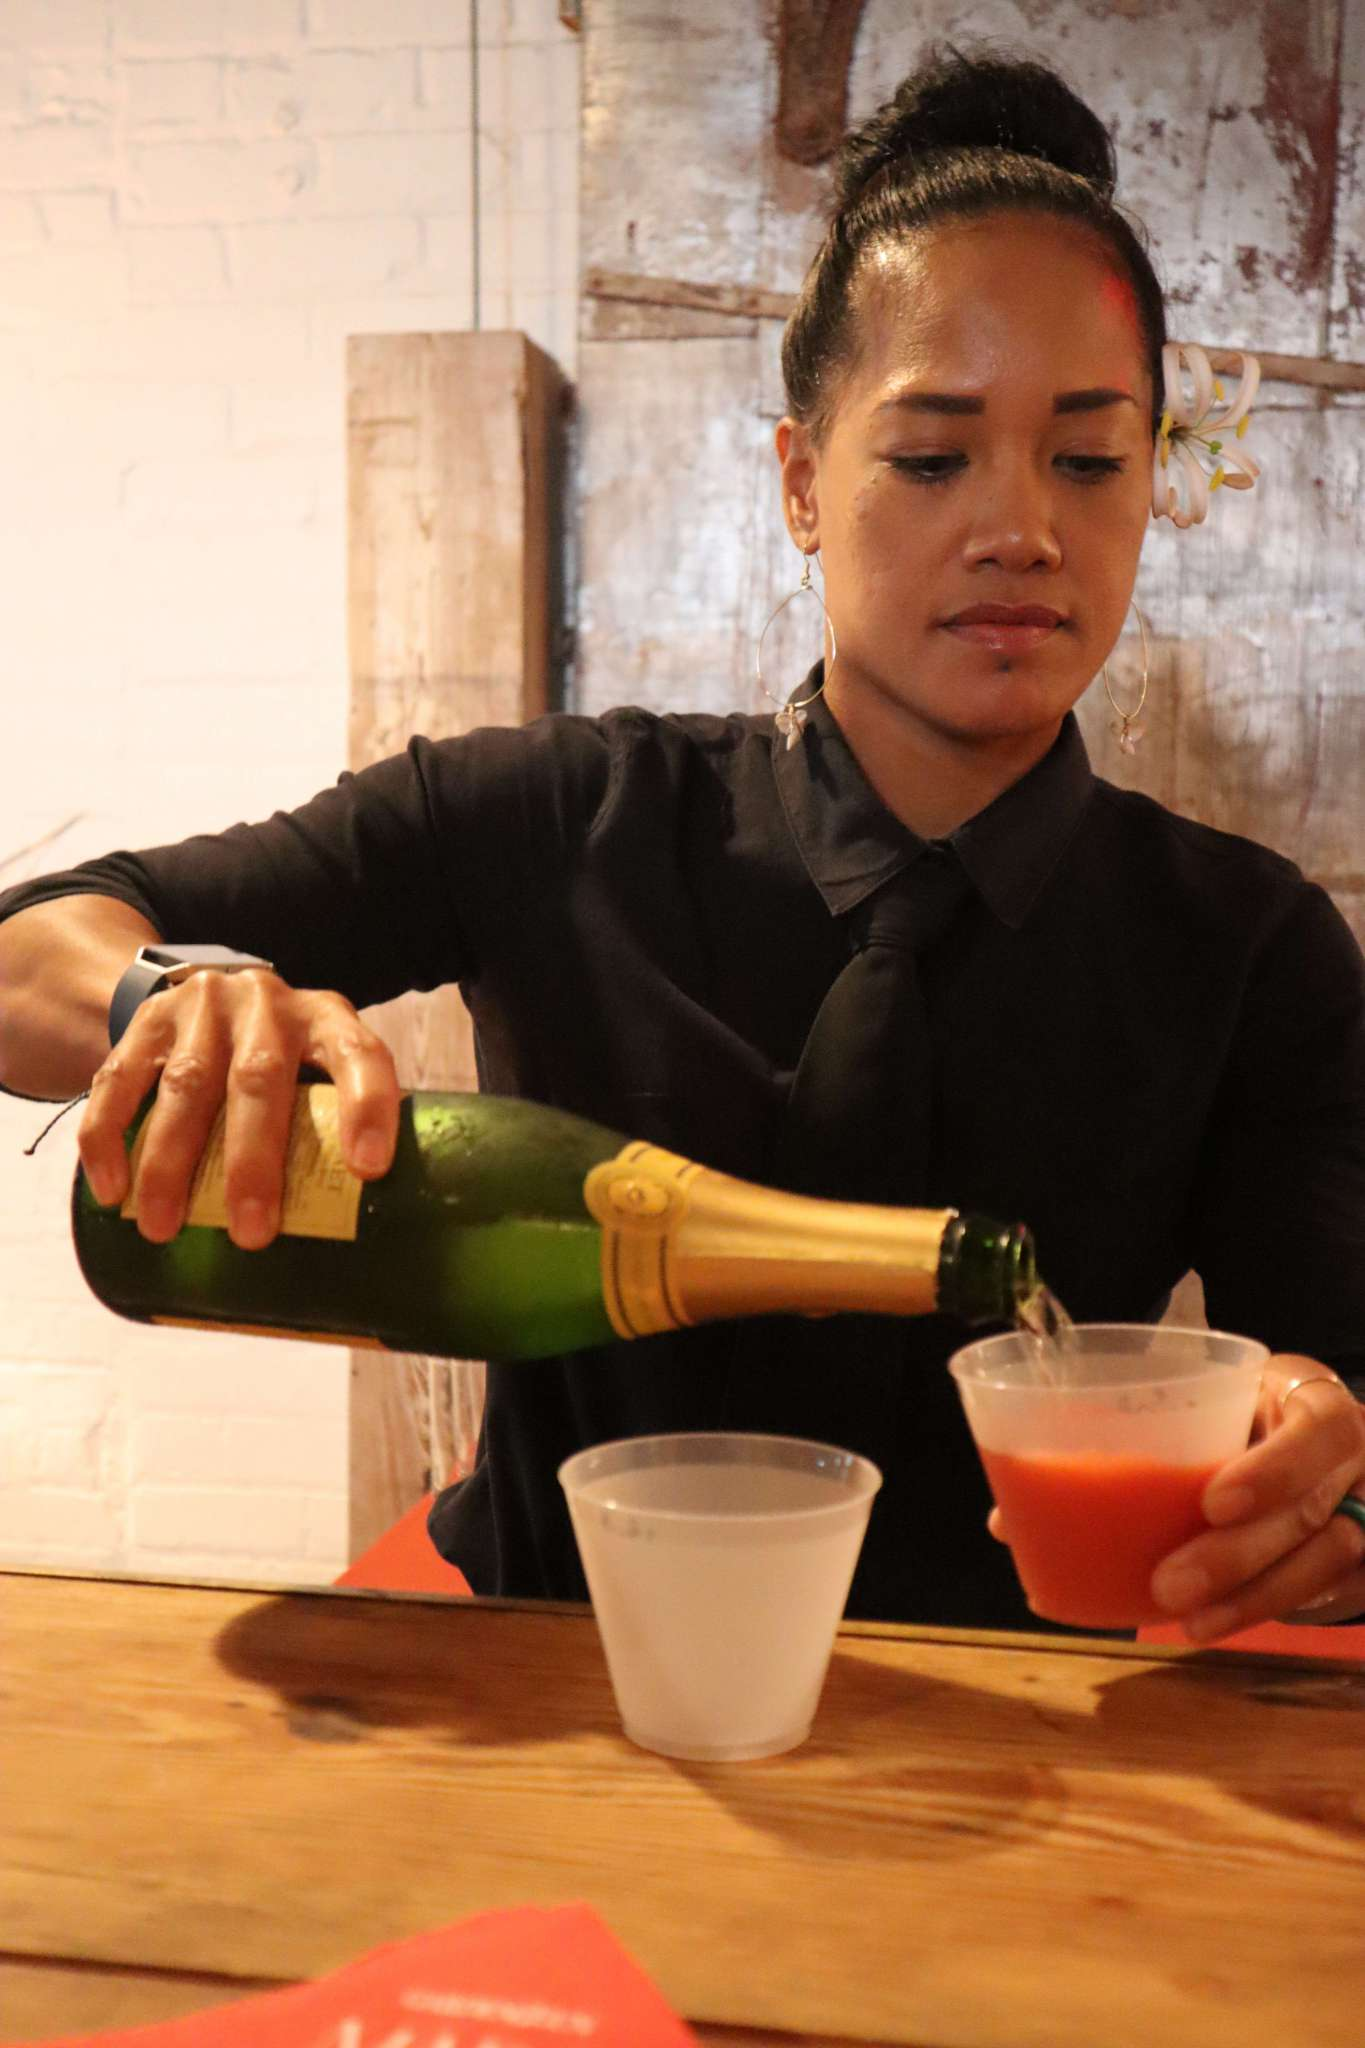 A woman mixing drinks